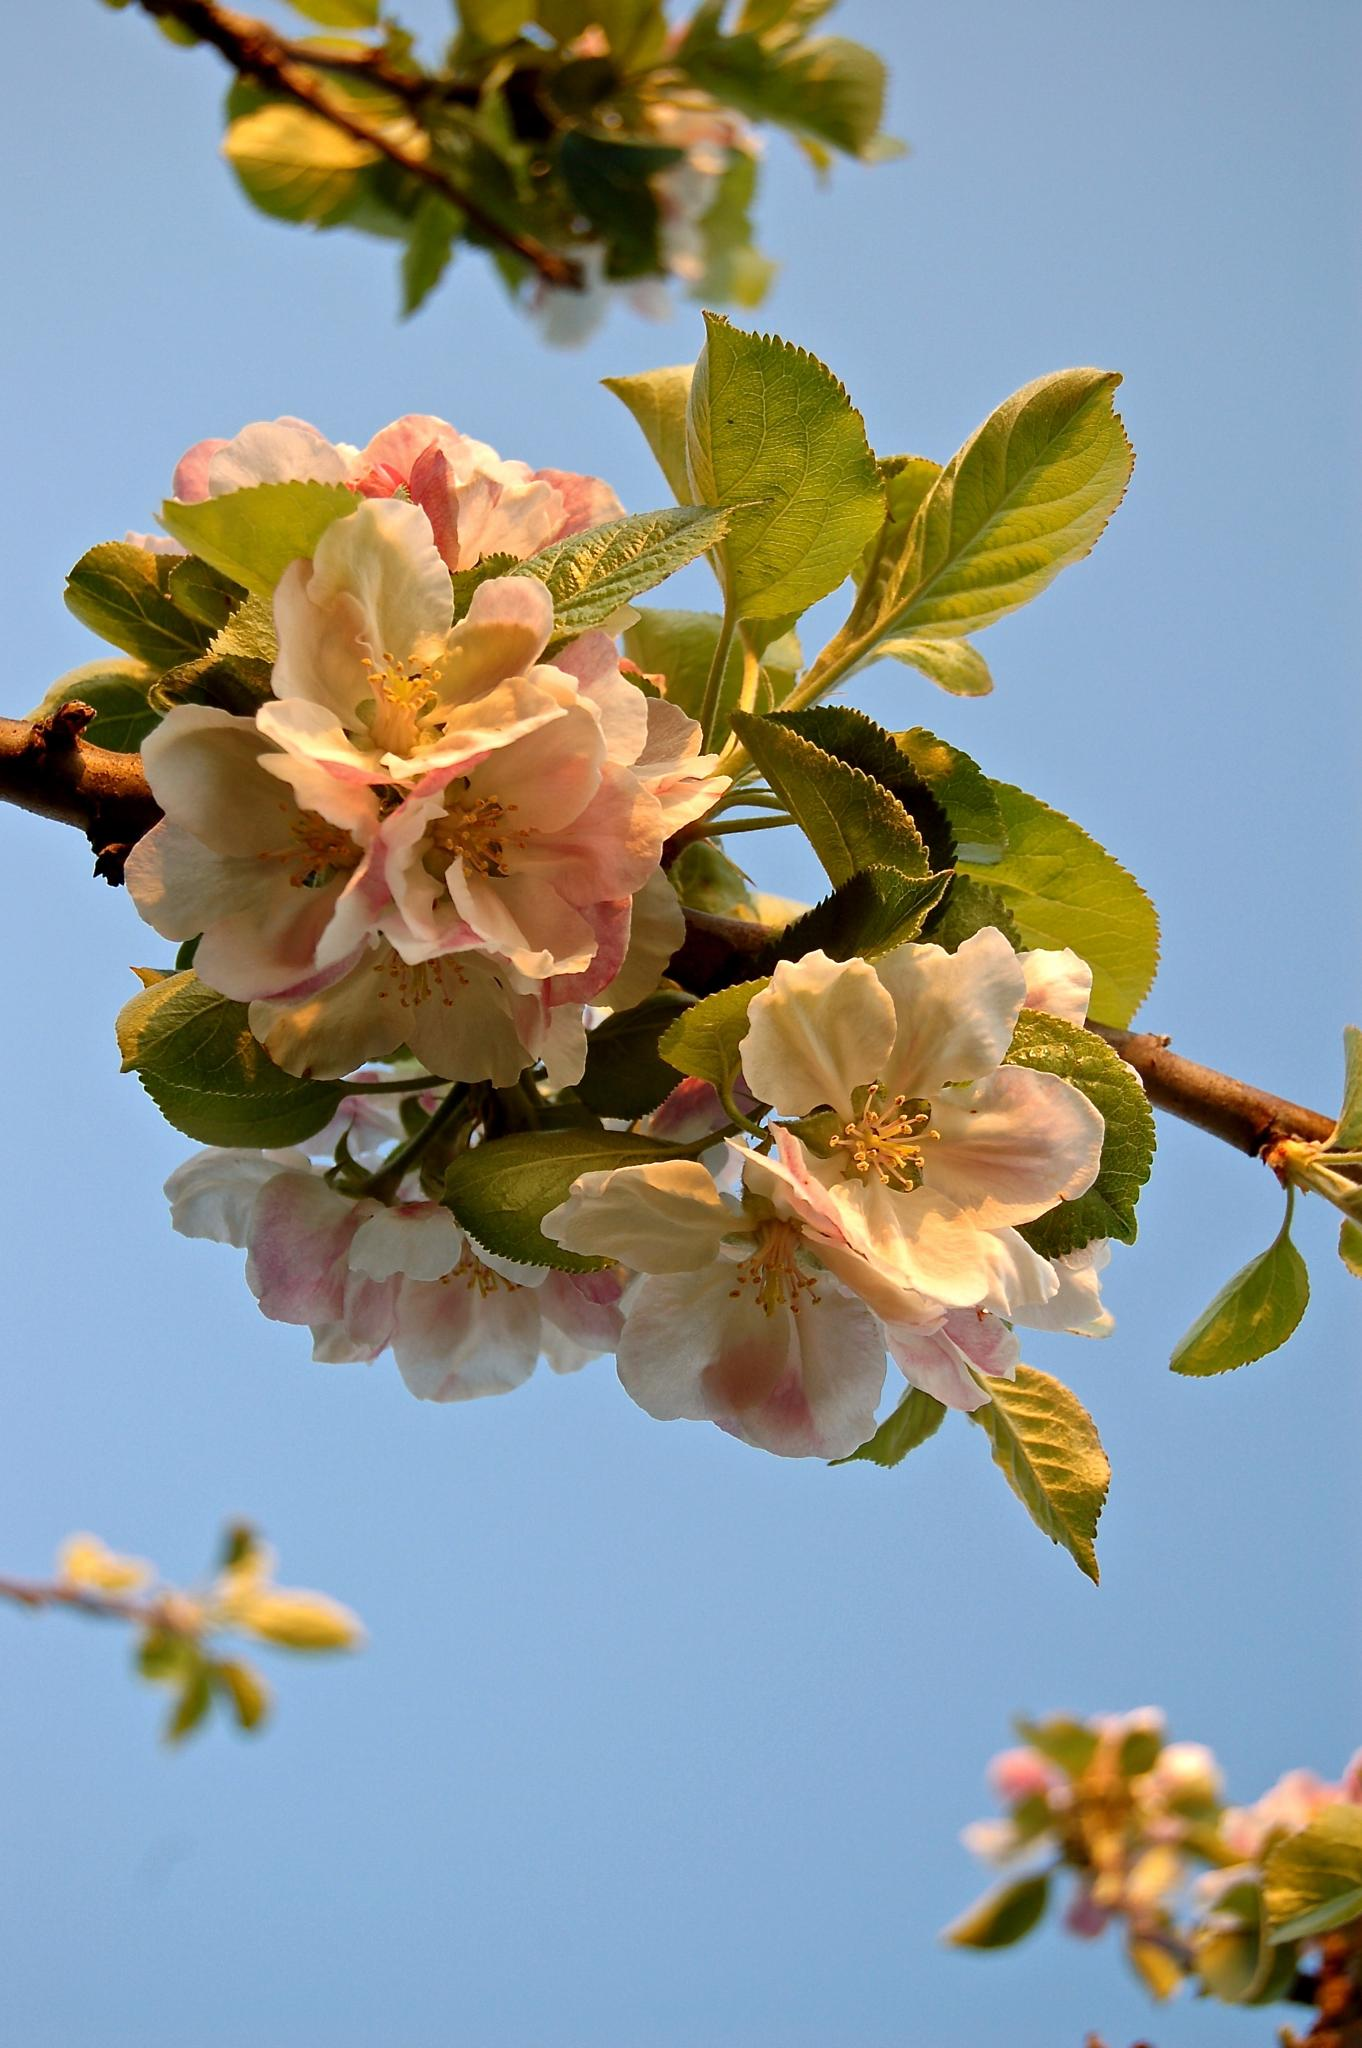 aPPLe BLoSSoM by aLDouS aNGSTeiN